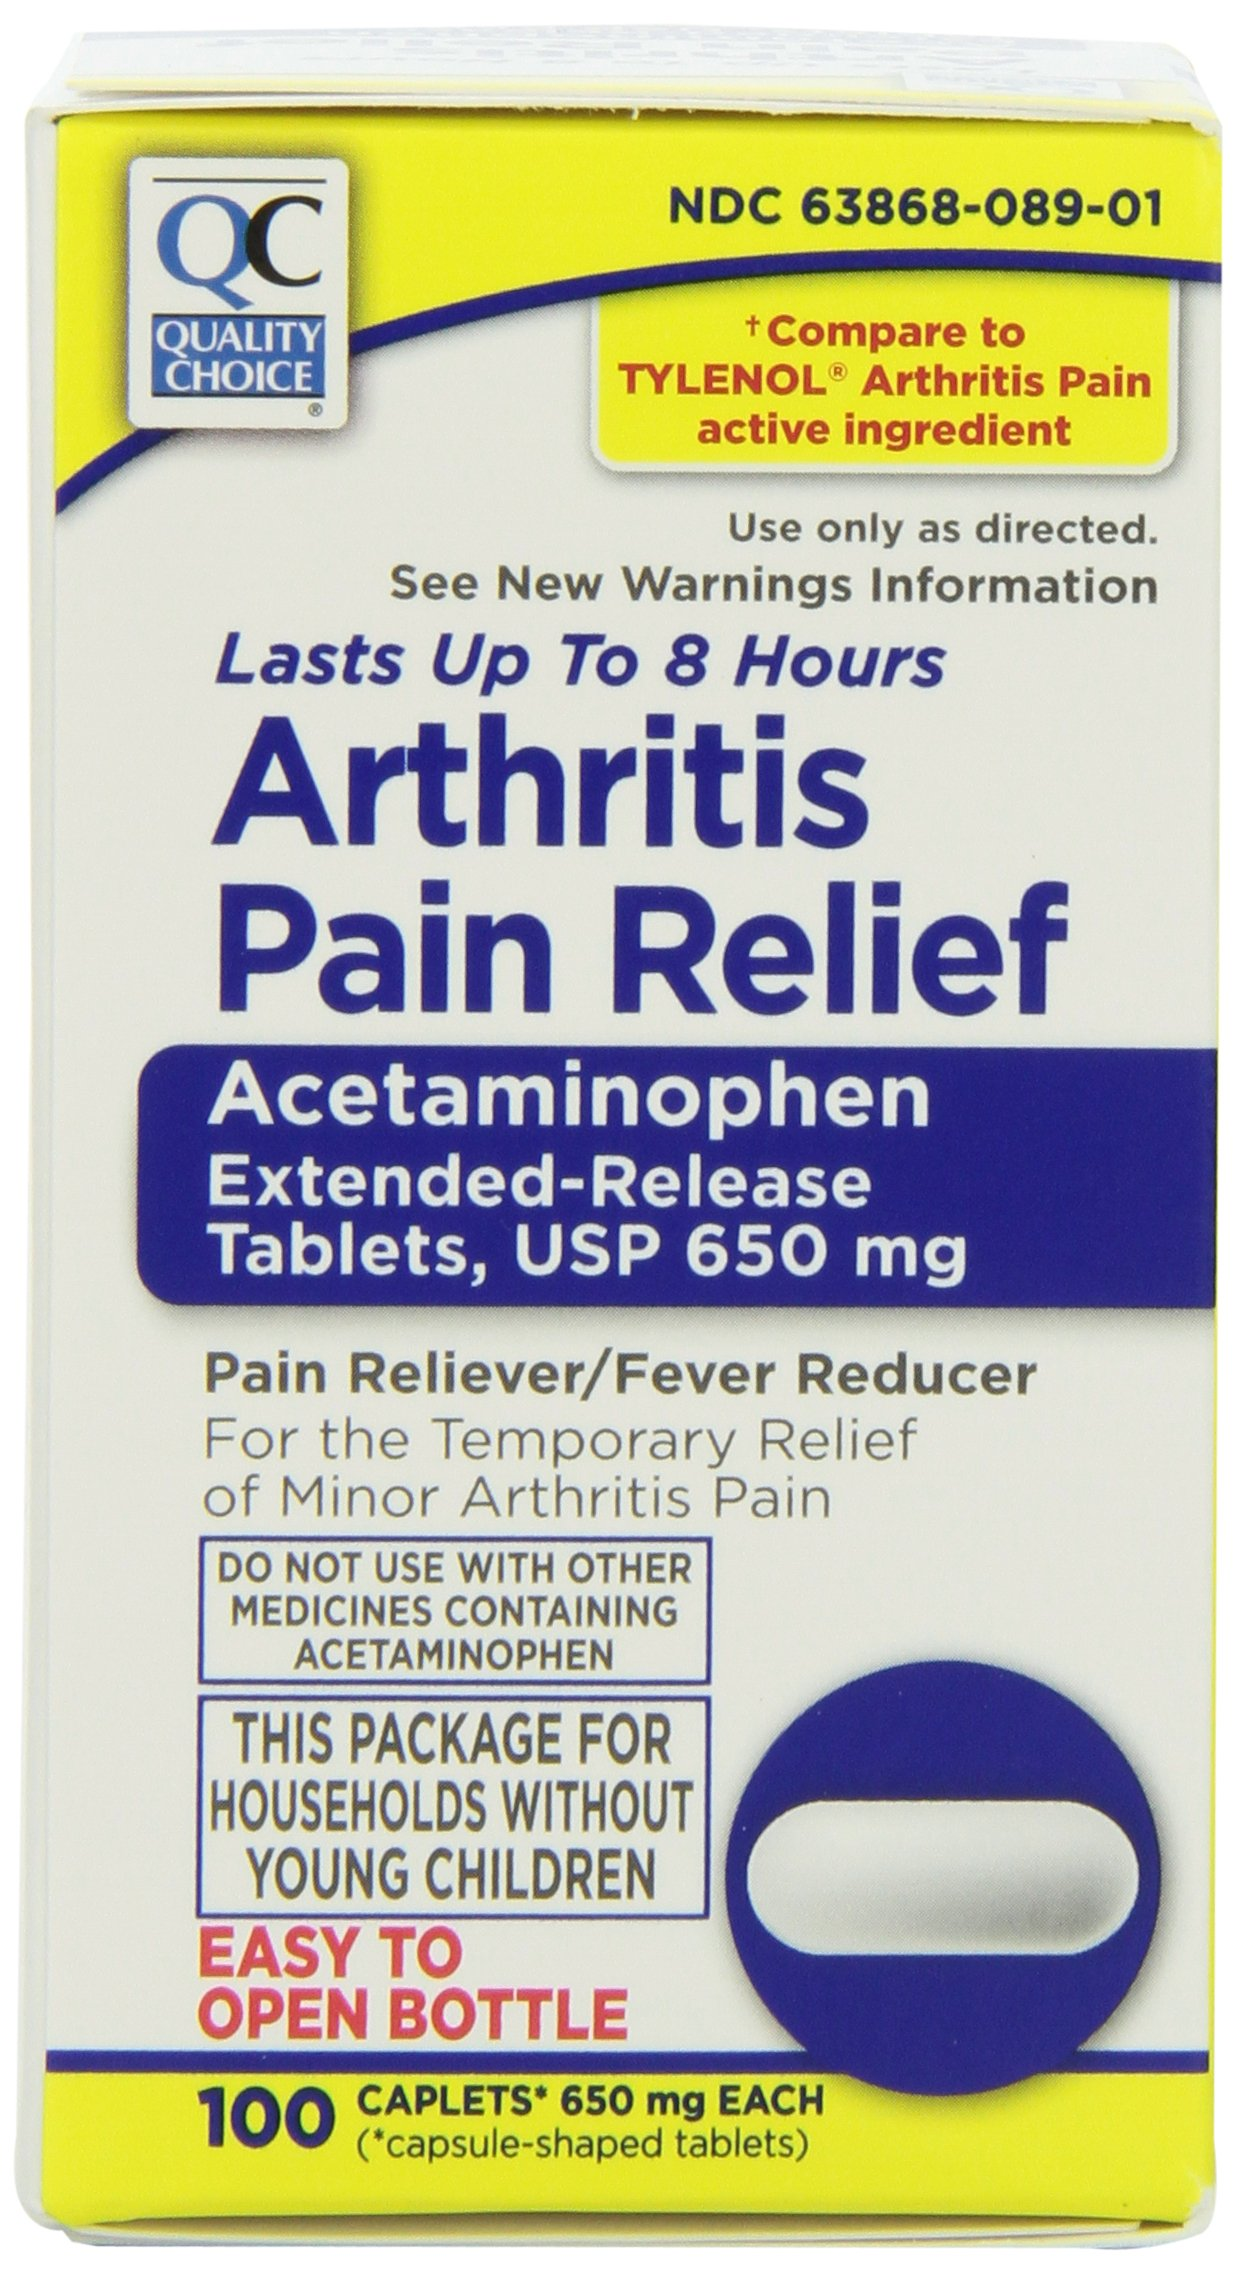 Quality Choice Arthritis Non Aspirin 650mg. Pain Relief Caplet 100 Count With Easy Open Cap, Boxes (Pack of 2)